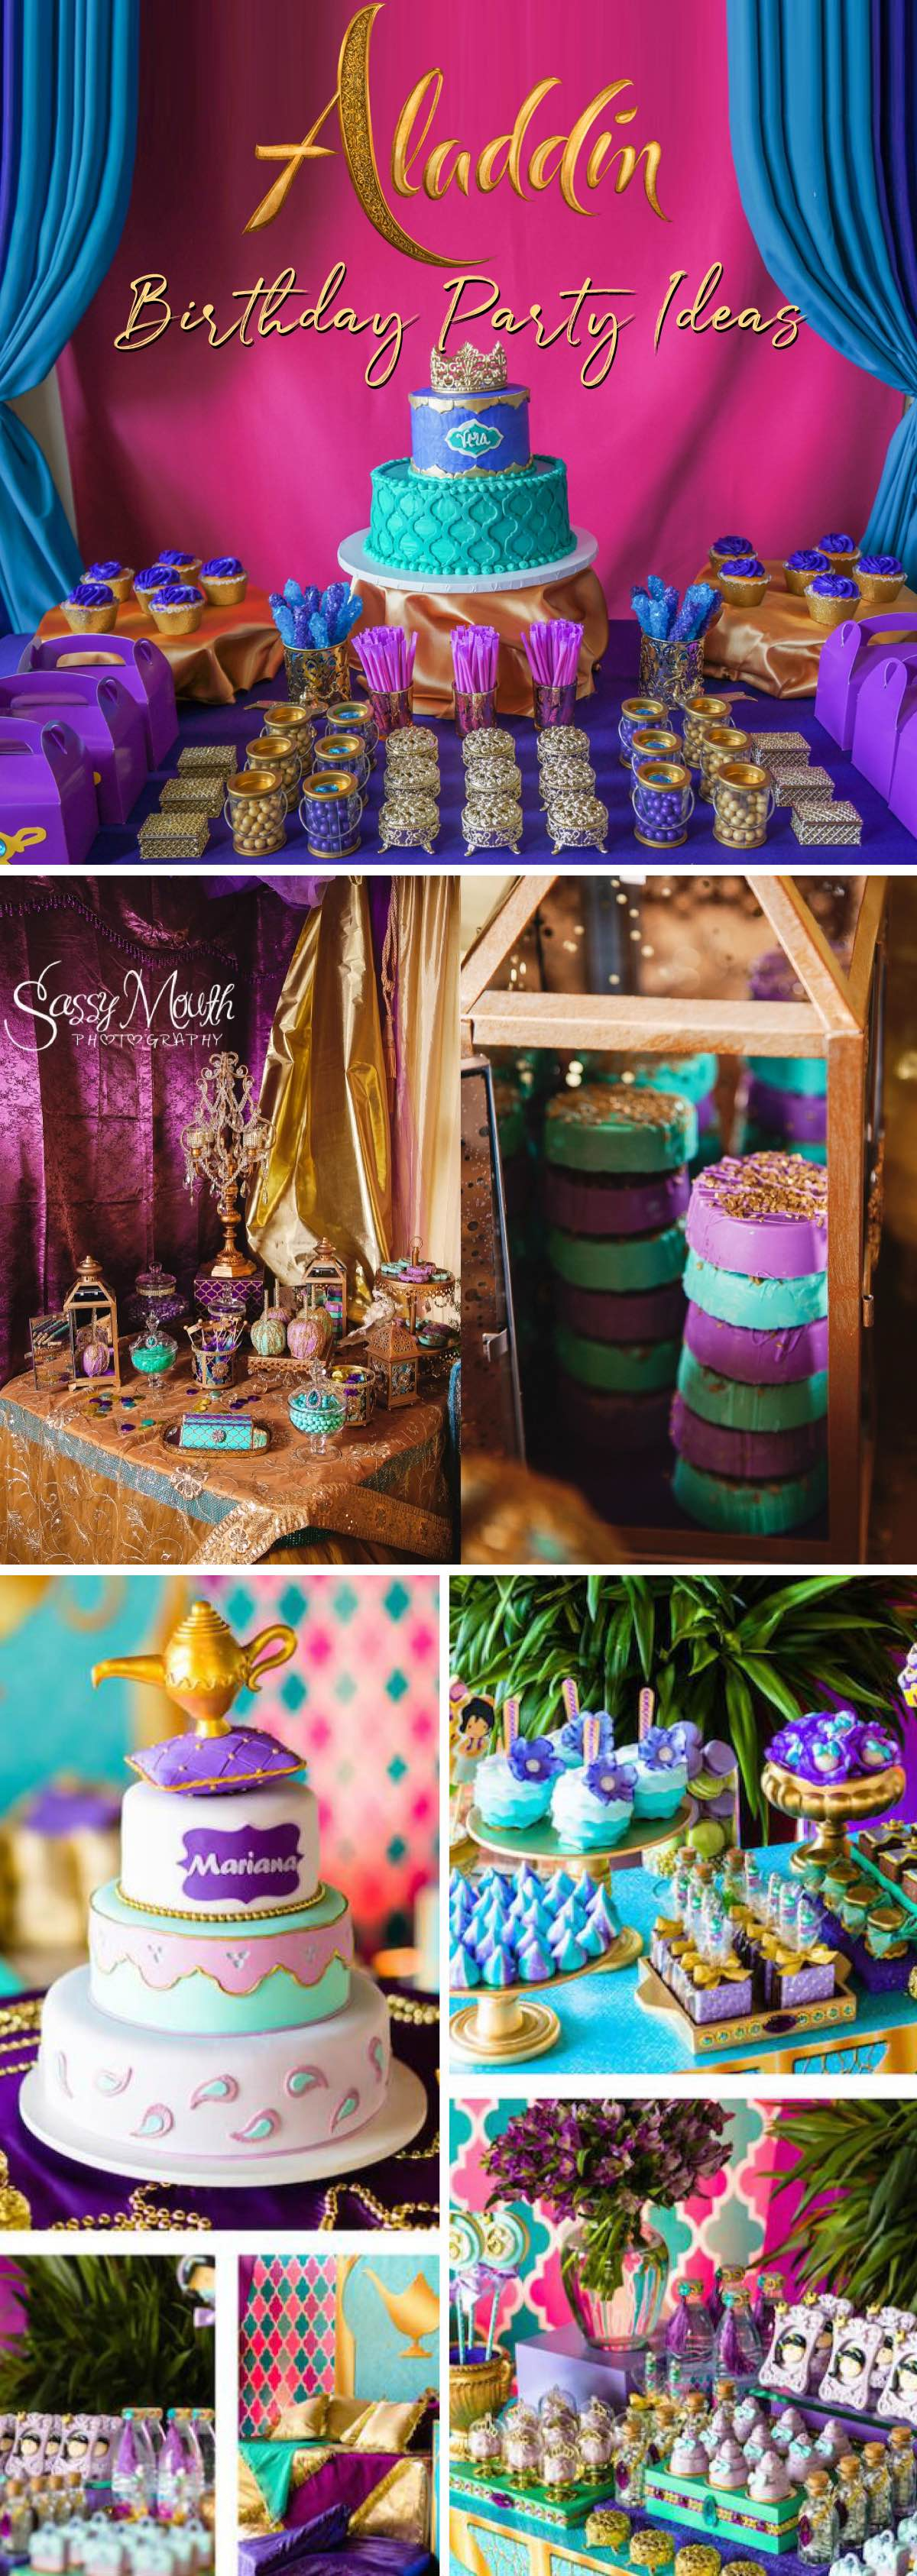 10 Fascinating Aladdin Birthday Party Ideas To Cast a Magical Spell!